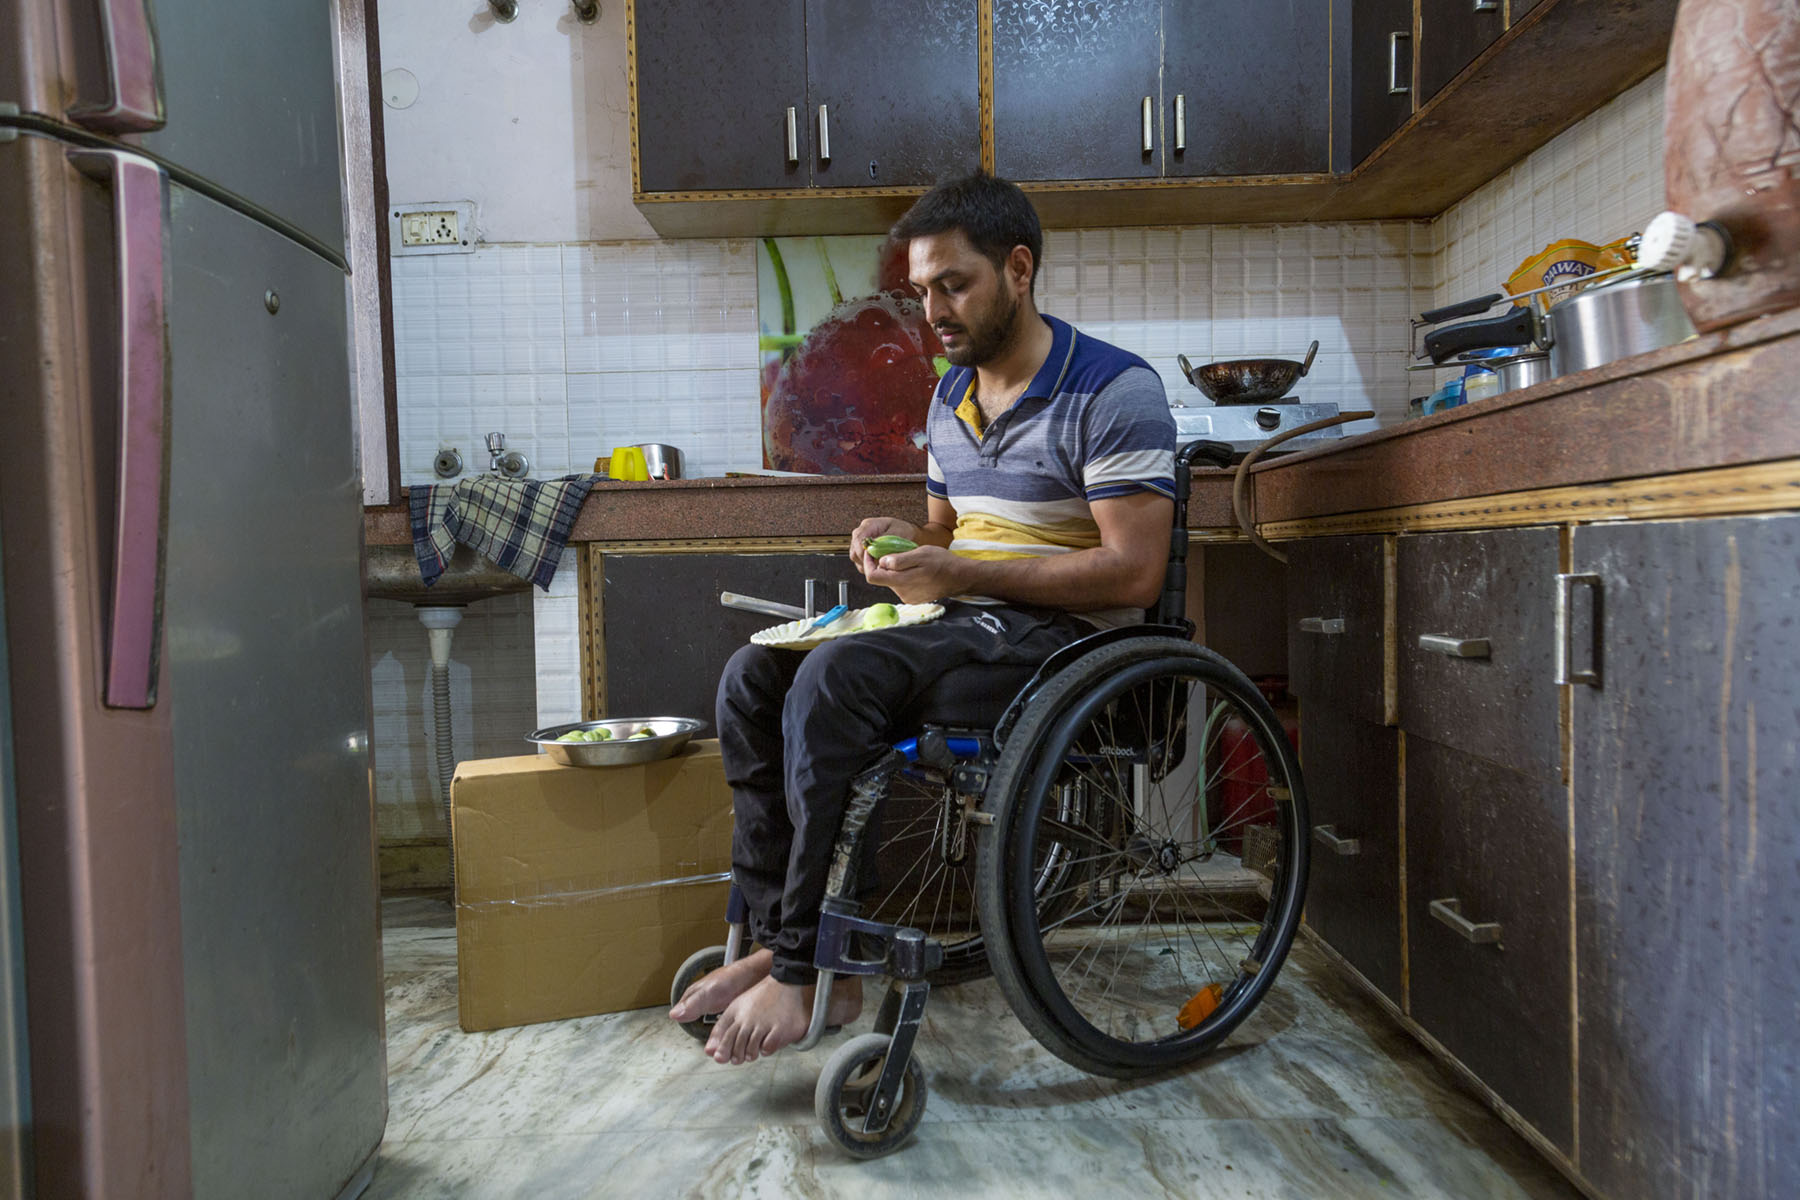 Shams sits in his wheelchair in a corner of his kitchen. A white plate is balanced on his lap. He is cutting a green vegetable with a small knife. The kitchen wall has white tiles. The platform is made of brown marble and there are matching brown kitchen cabinets and drawers. On the platform are some vessels and a gas stove with a kadai on the burner.